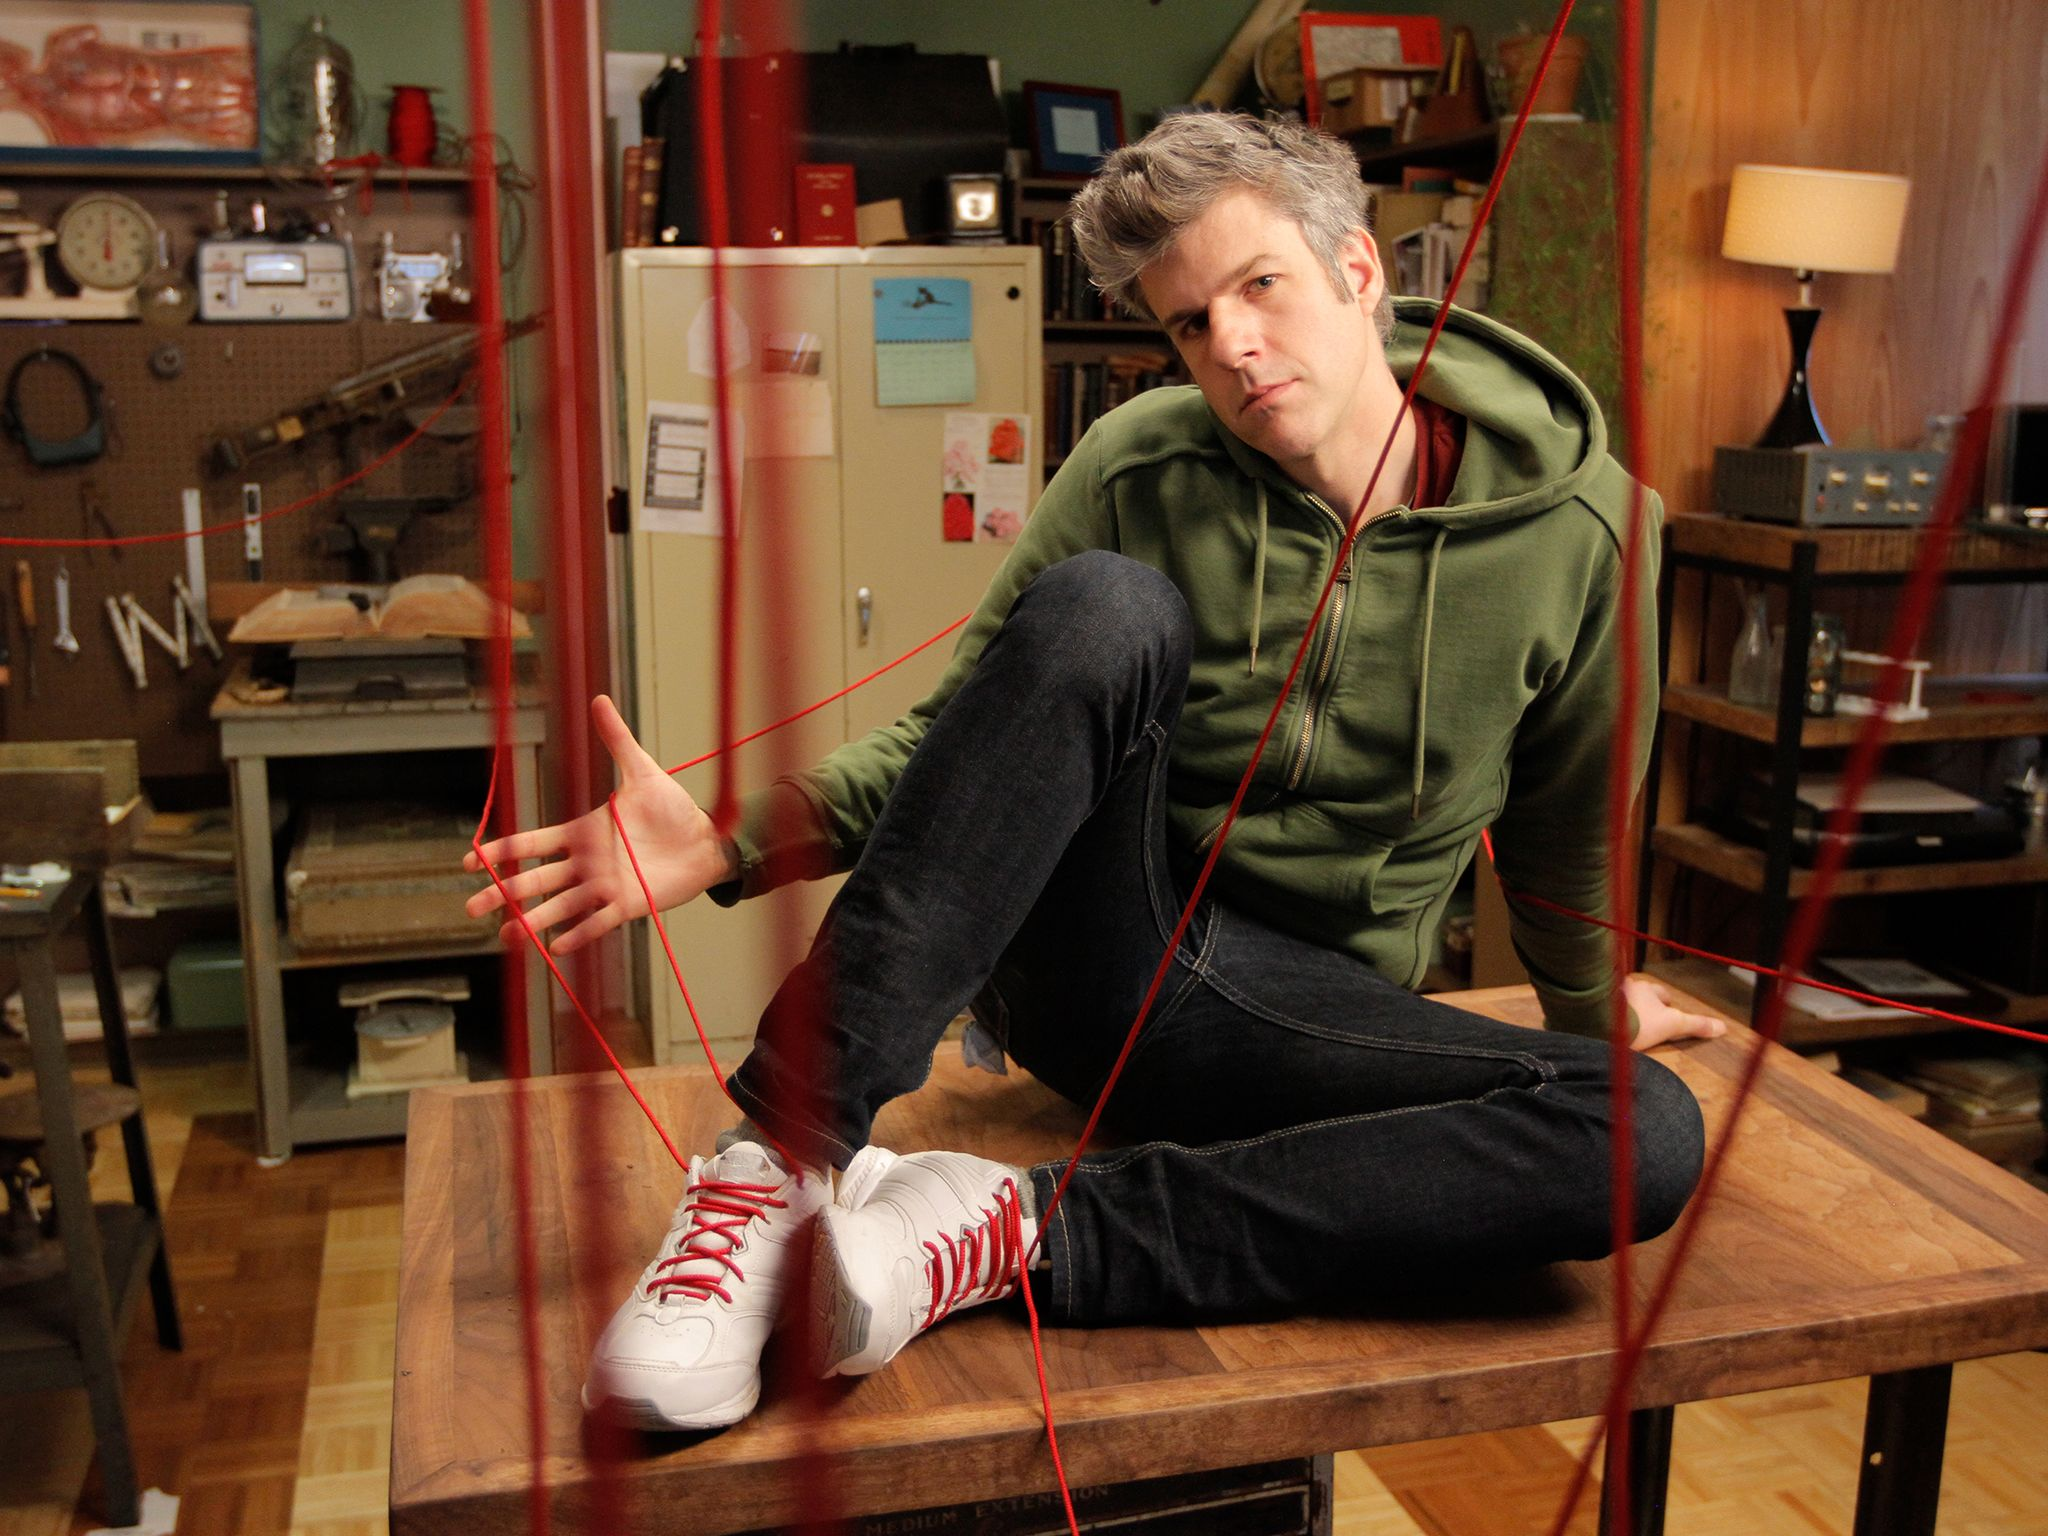 Beacon, NY: David Rees poses on top of his workbench with 50-foot laces strewn about his... [Photo of the day - اکتوبر 2014]